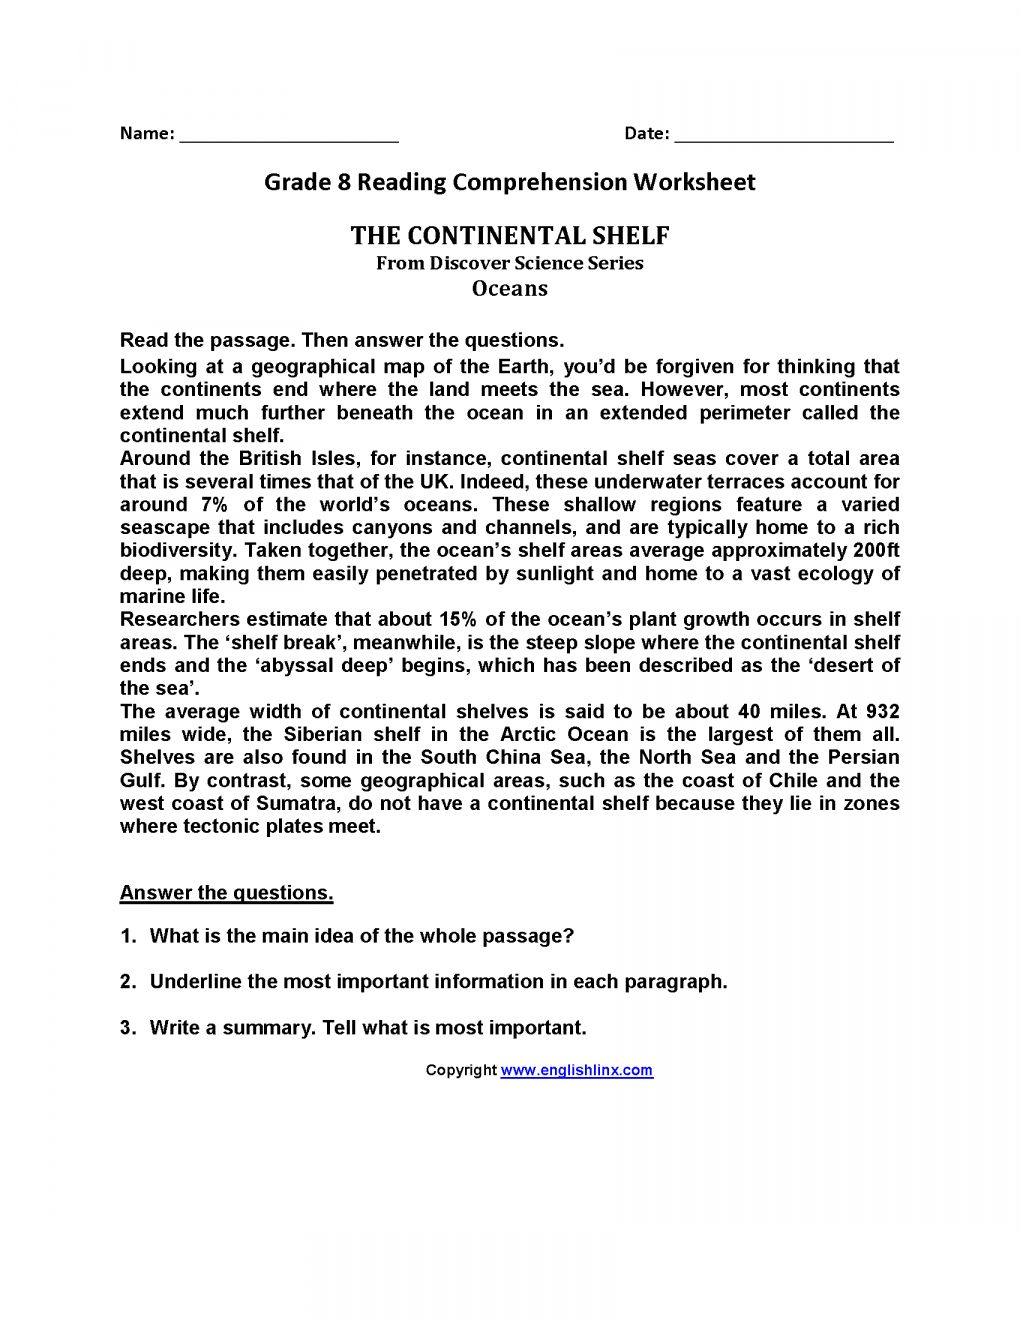 hight resolution of 7+ Reading Comprehension Grade 8 Worksheet   Reading comprehension  worksheets